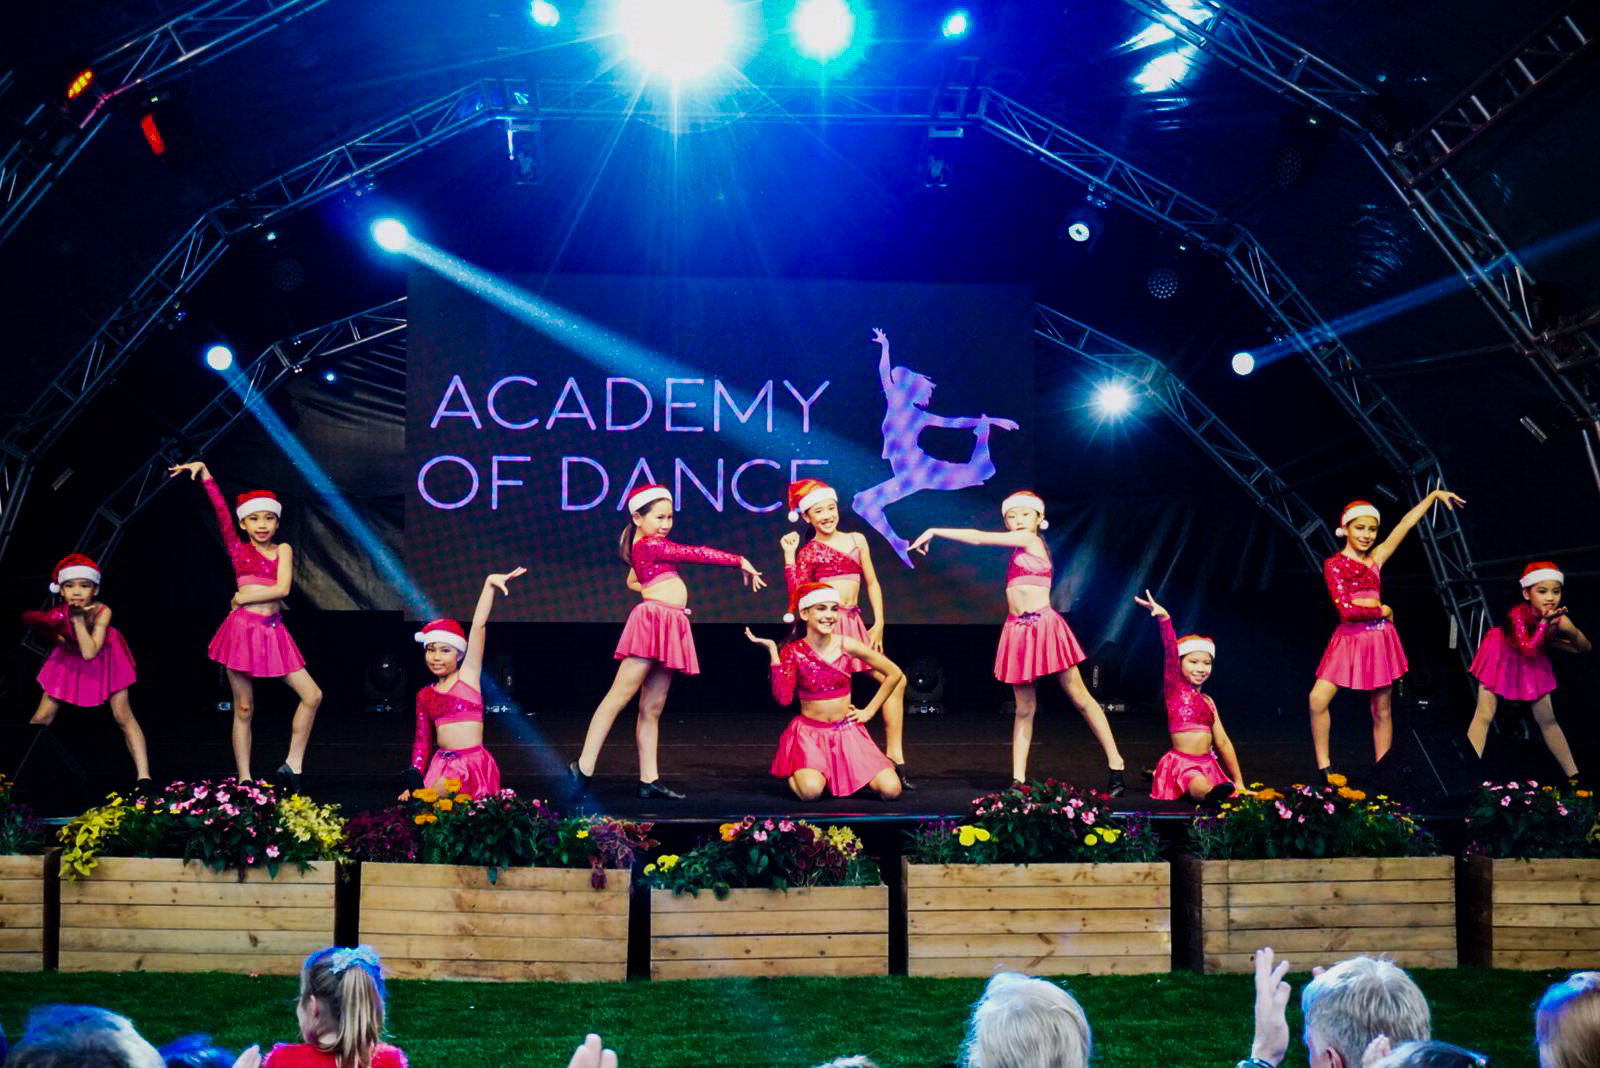 Academy of Dance - AIA Carnival - Duo Jazz Dance 2